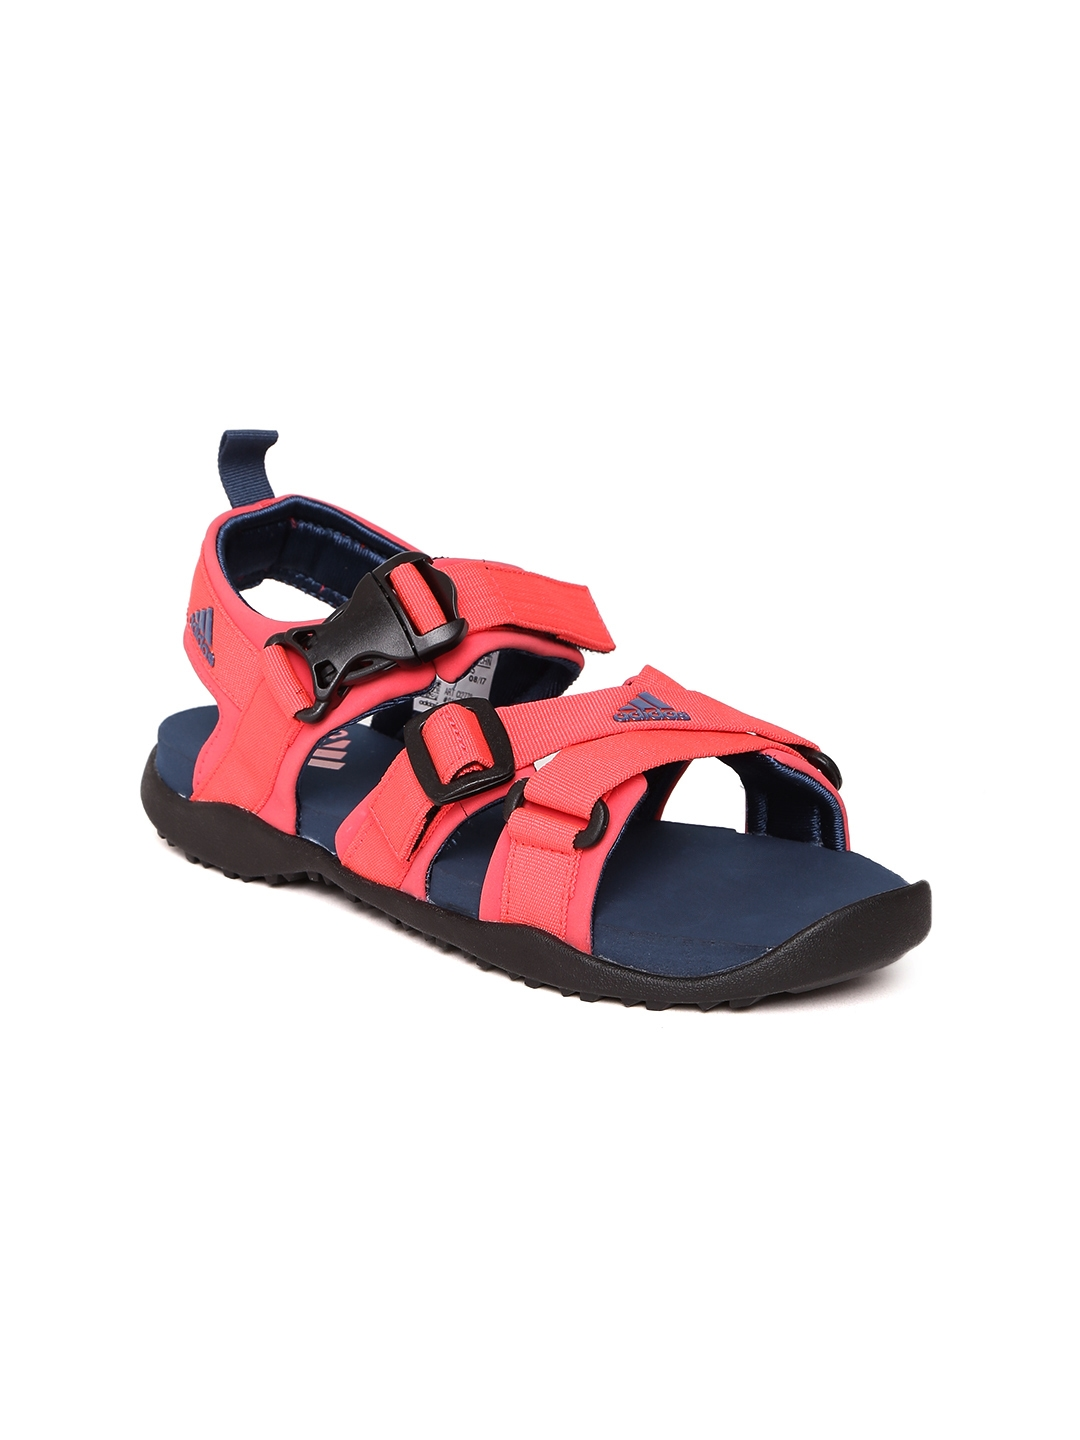 2674ae874cd45b Buy Adidas Women Coral Red GLADI Sports Sandals - Sports Sandals for ...